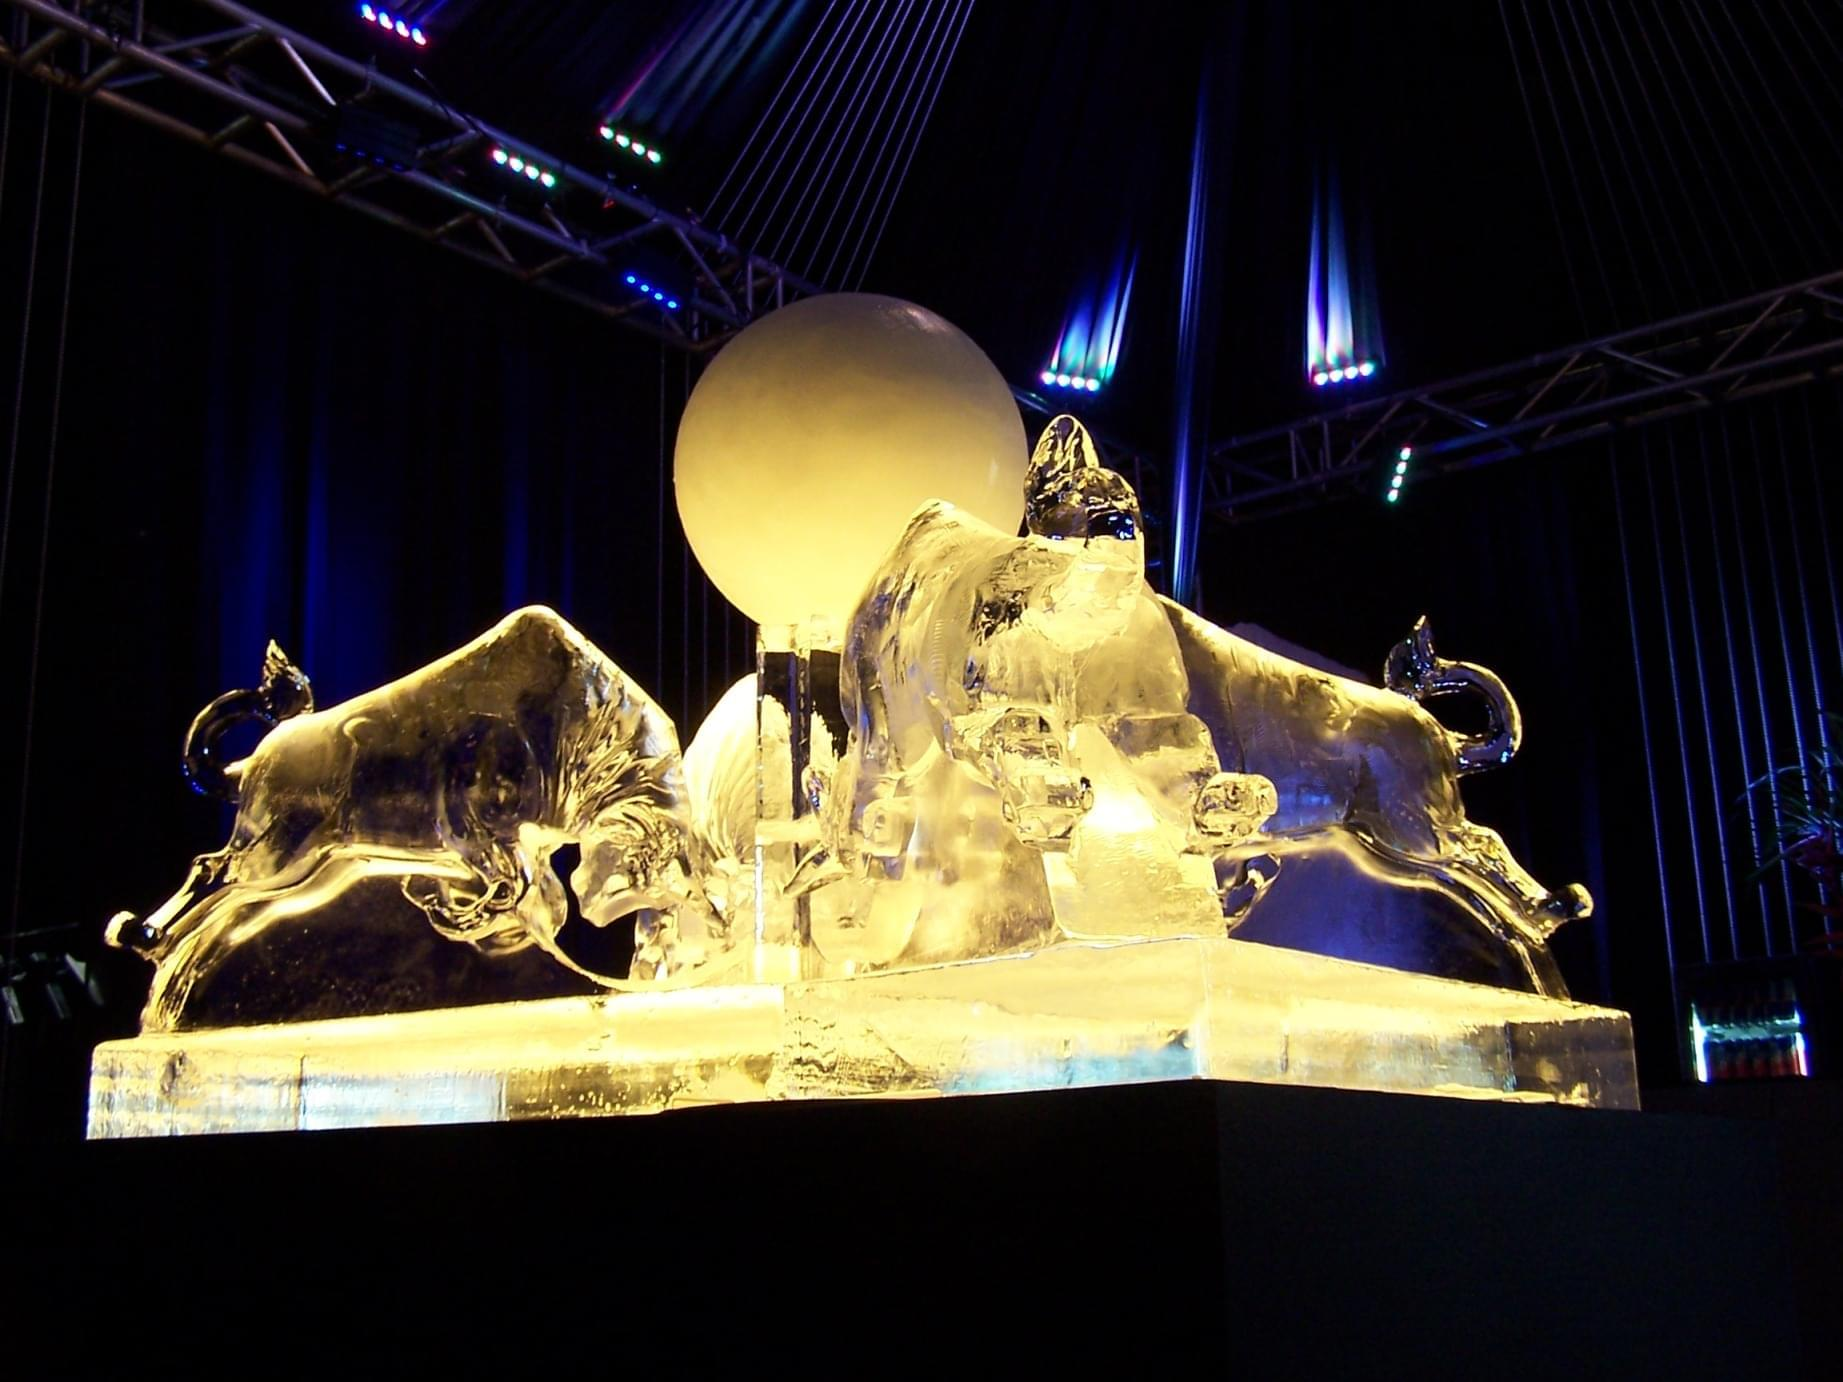 Bull, Product launch, 3D